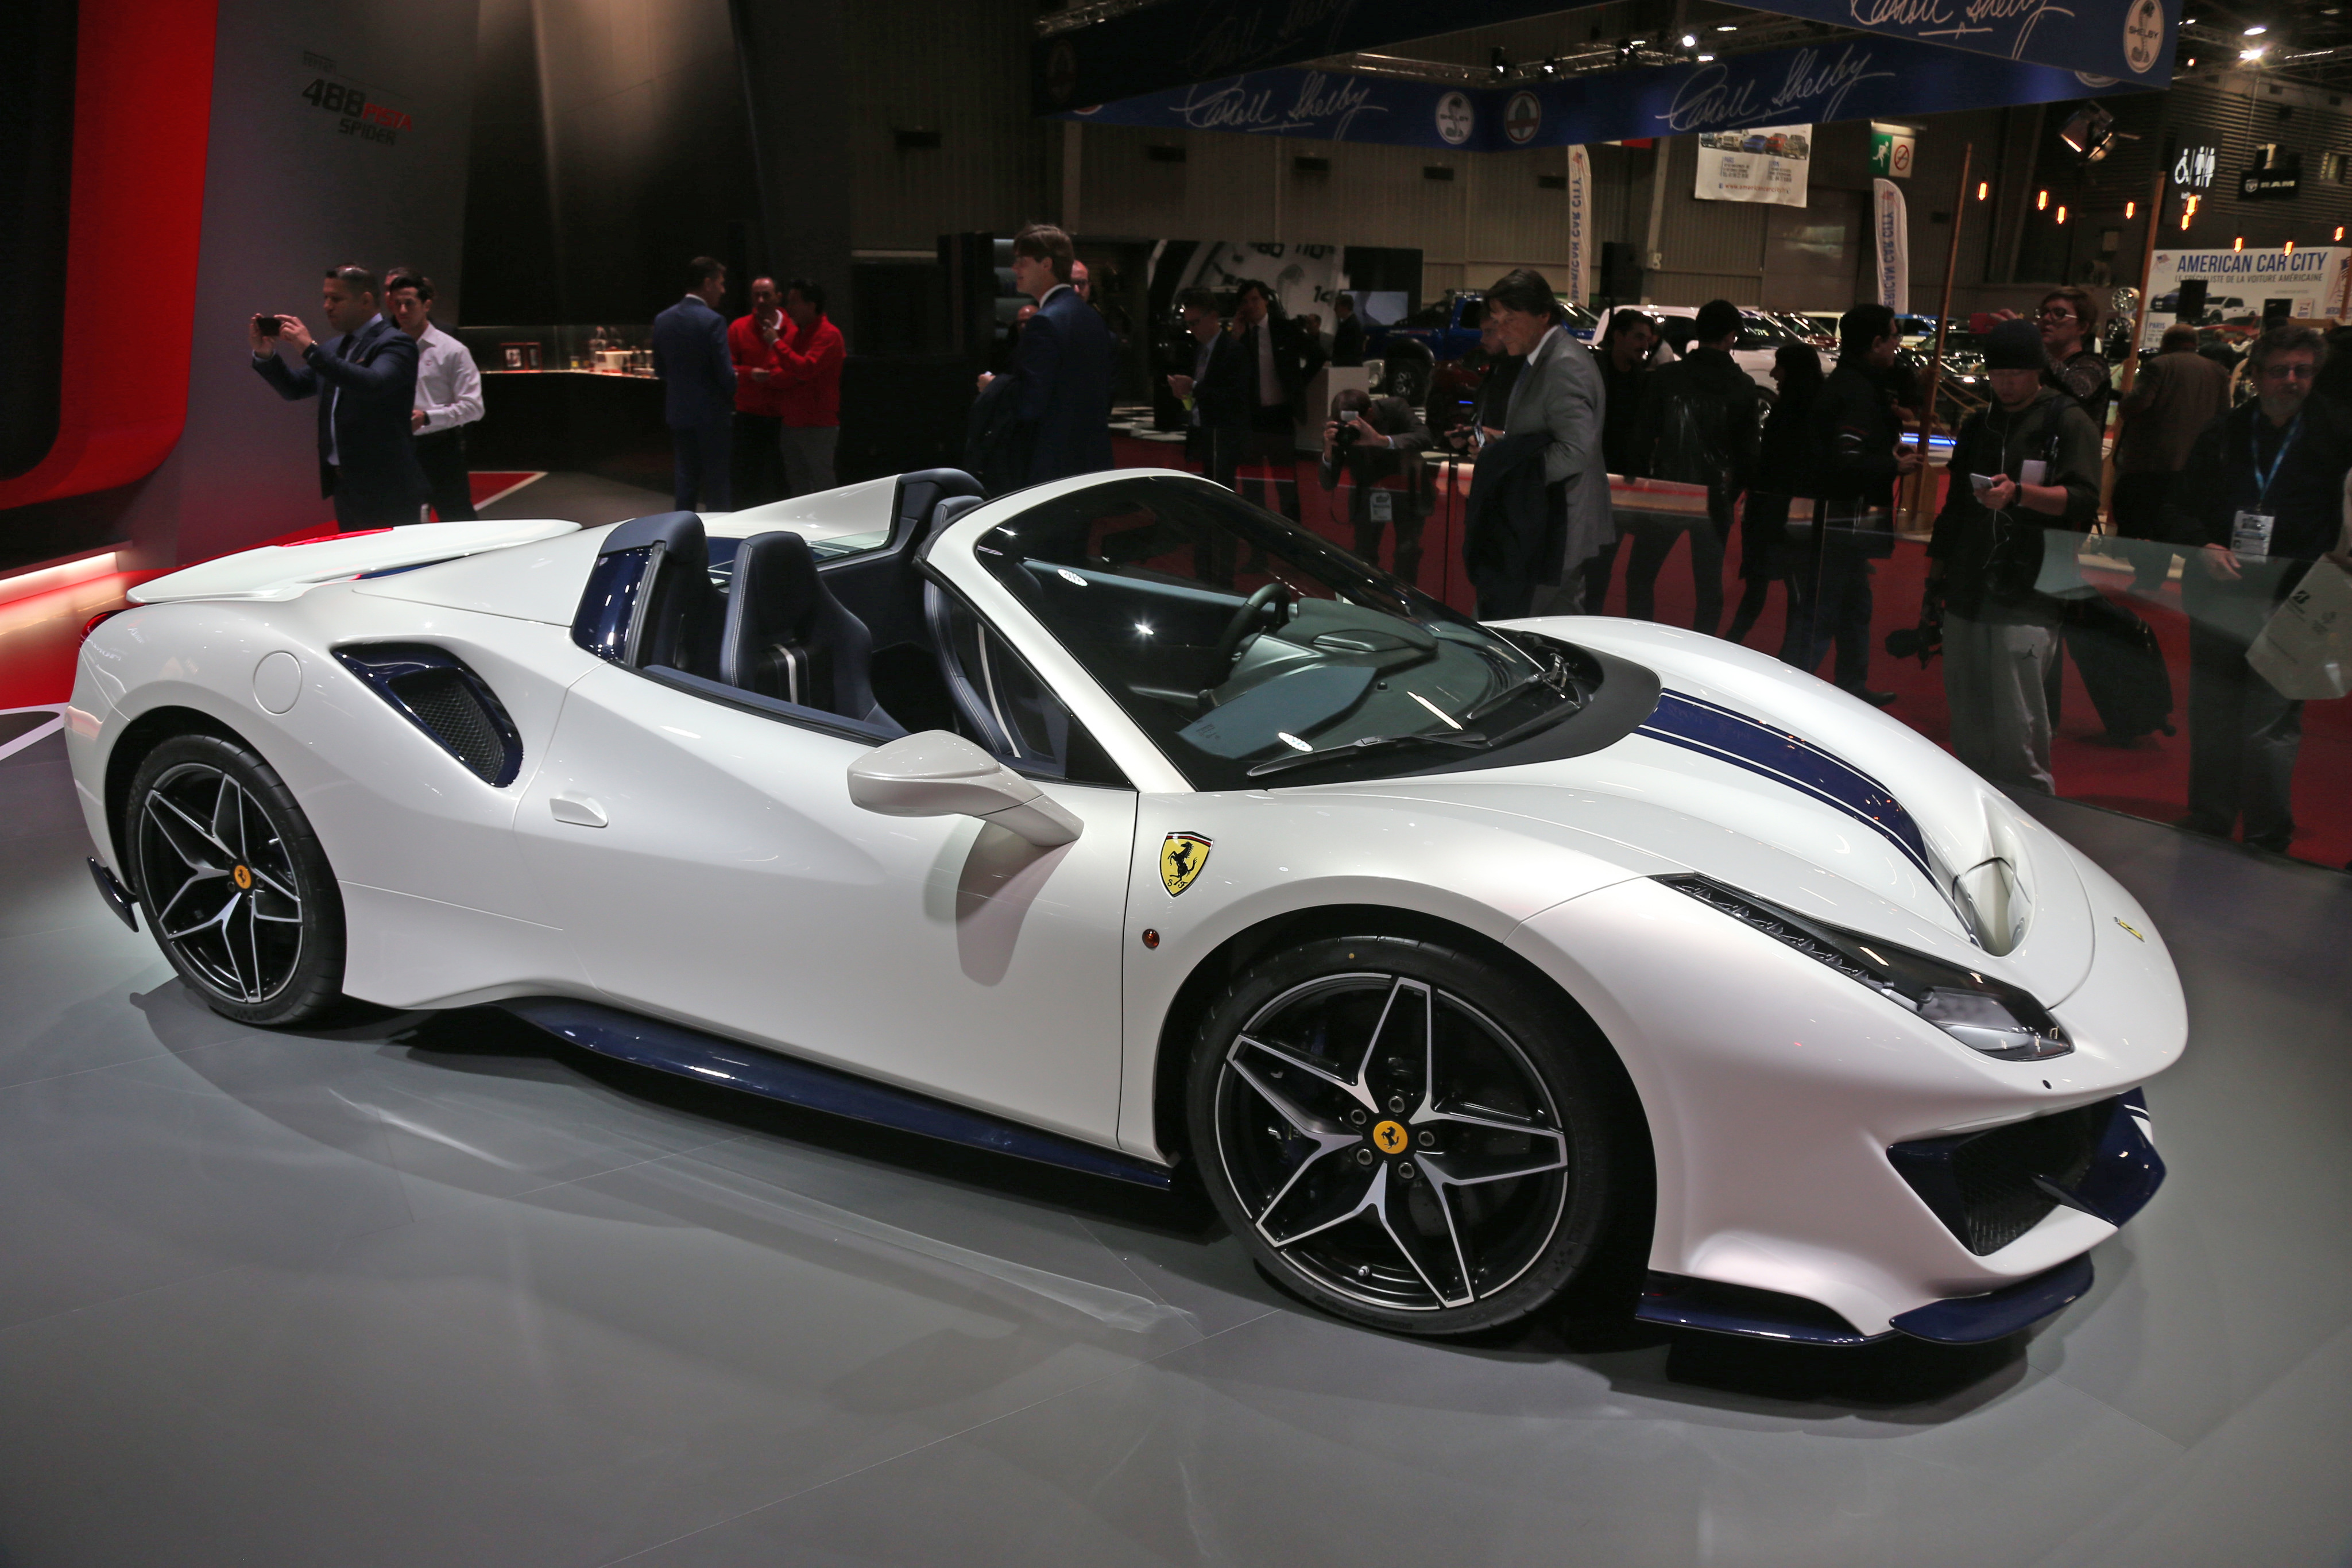 Ferrari 488 Pista Spider Makes Its European Debut At Paris Motorshow Along With Sp1 Sp2 Video News And Reviews On Malaysian Cars Motorcycles And Automotive Lifestyle